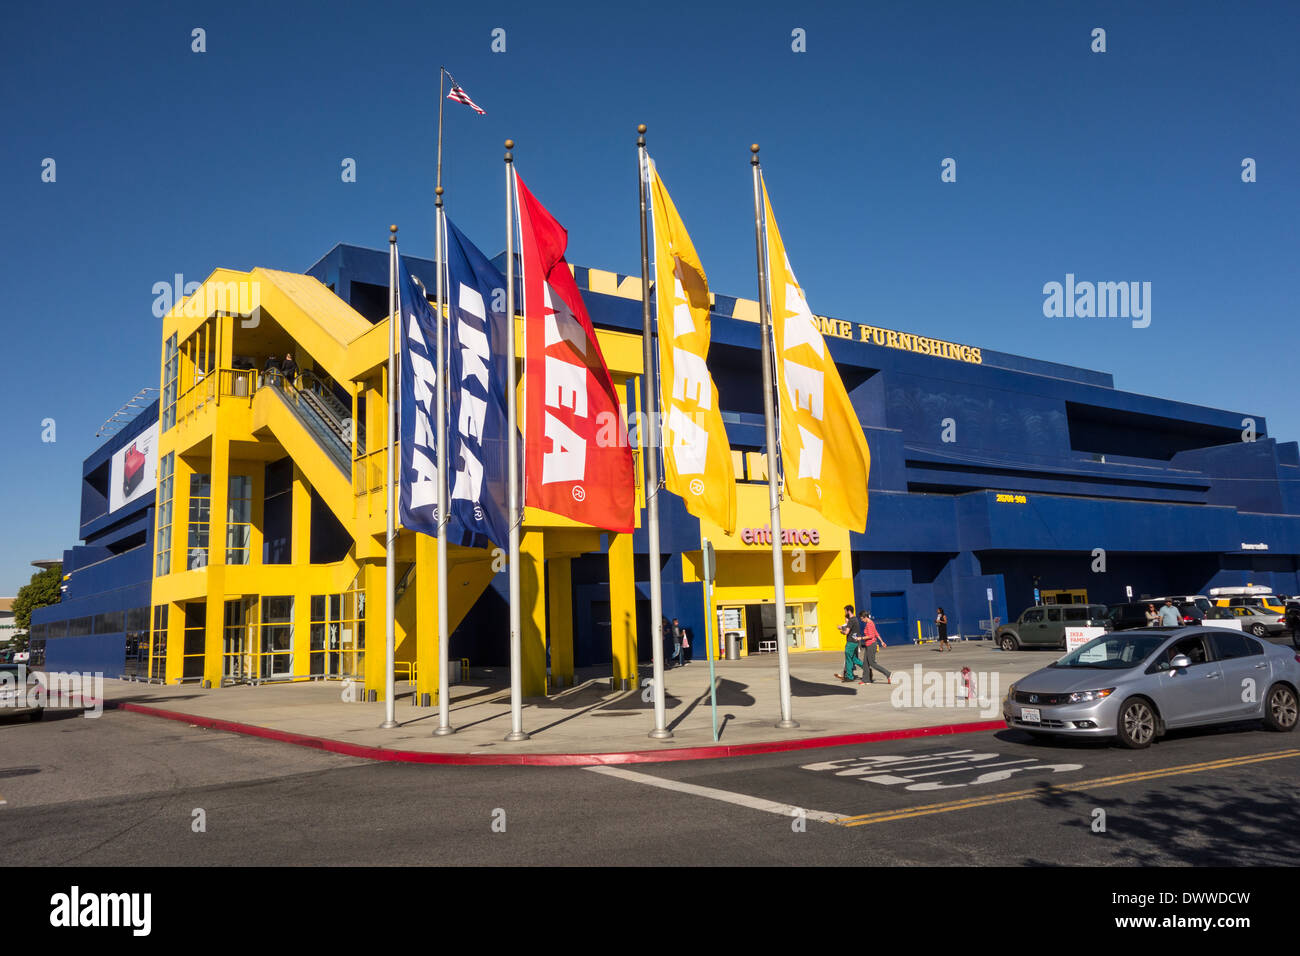 exterior of ikea megastore in los angeles area southern california stock photo 67556857 alamy. Black Bedroom Furniture Sets. Home Design Ideas